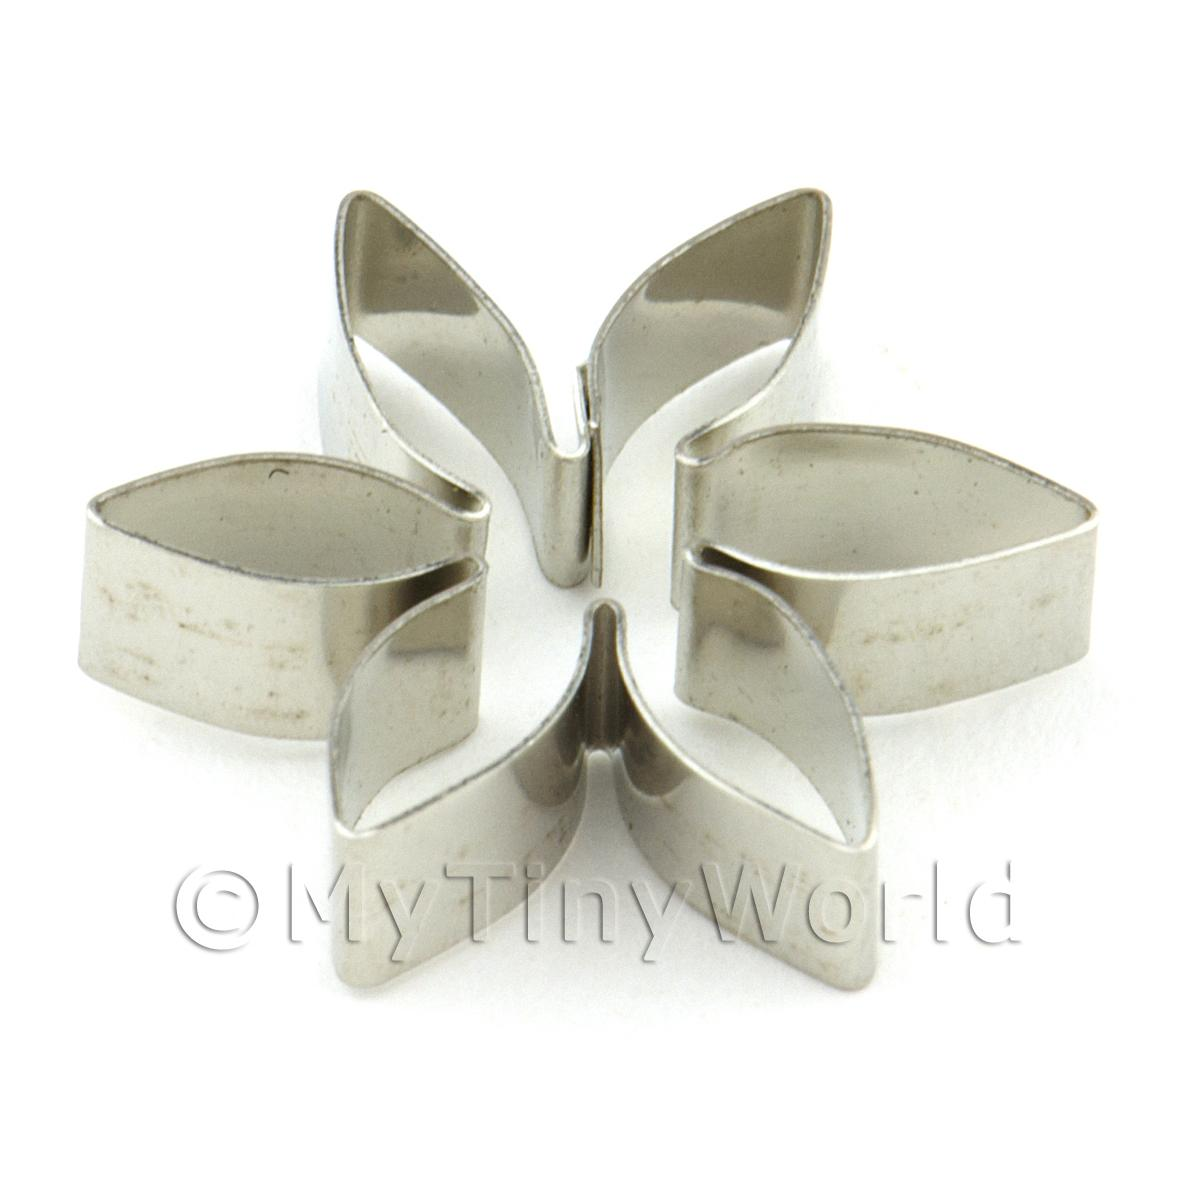 6 Petal Metal Flower Sugarcraft / Clay Cutter (18mm)